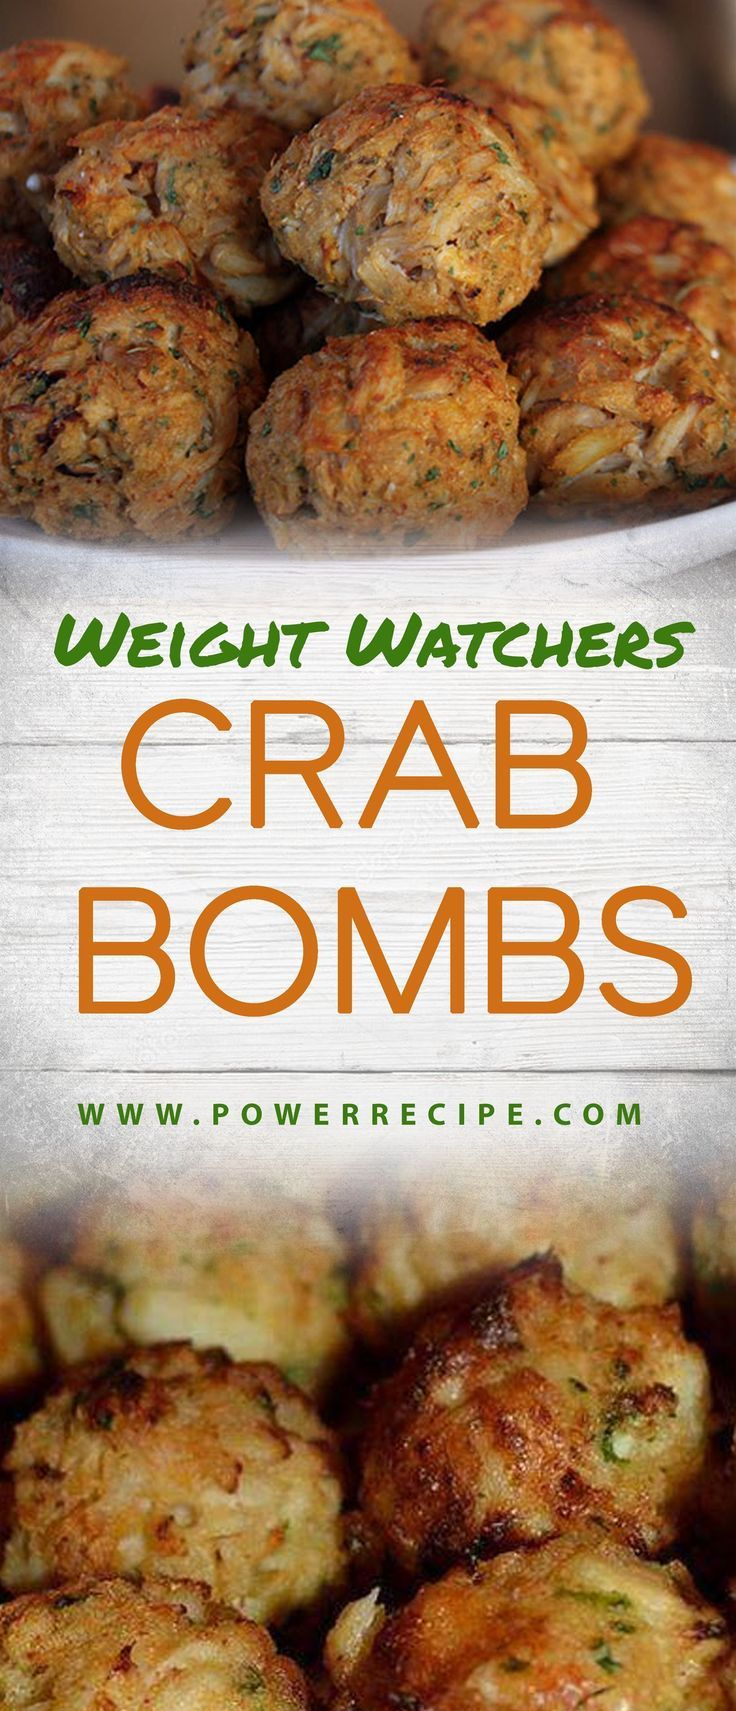 Best Crab Bombs (Weight Watchers)